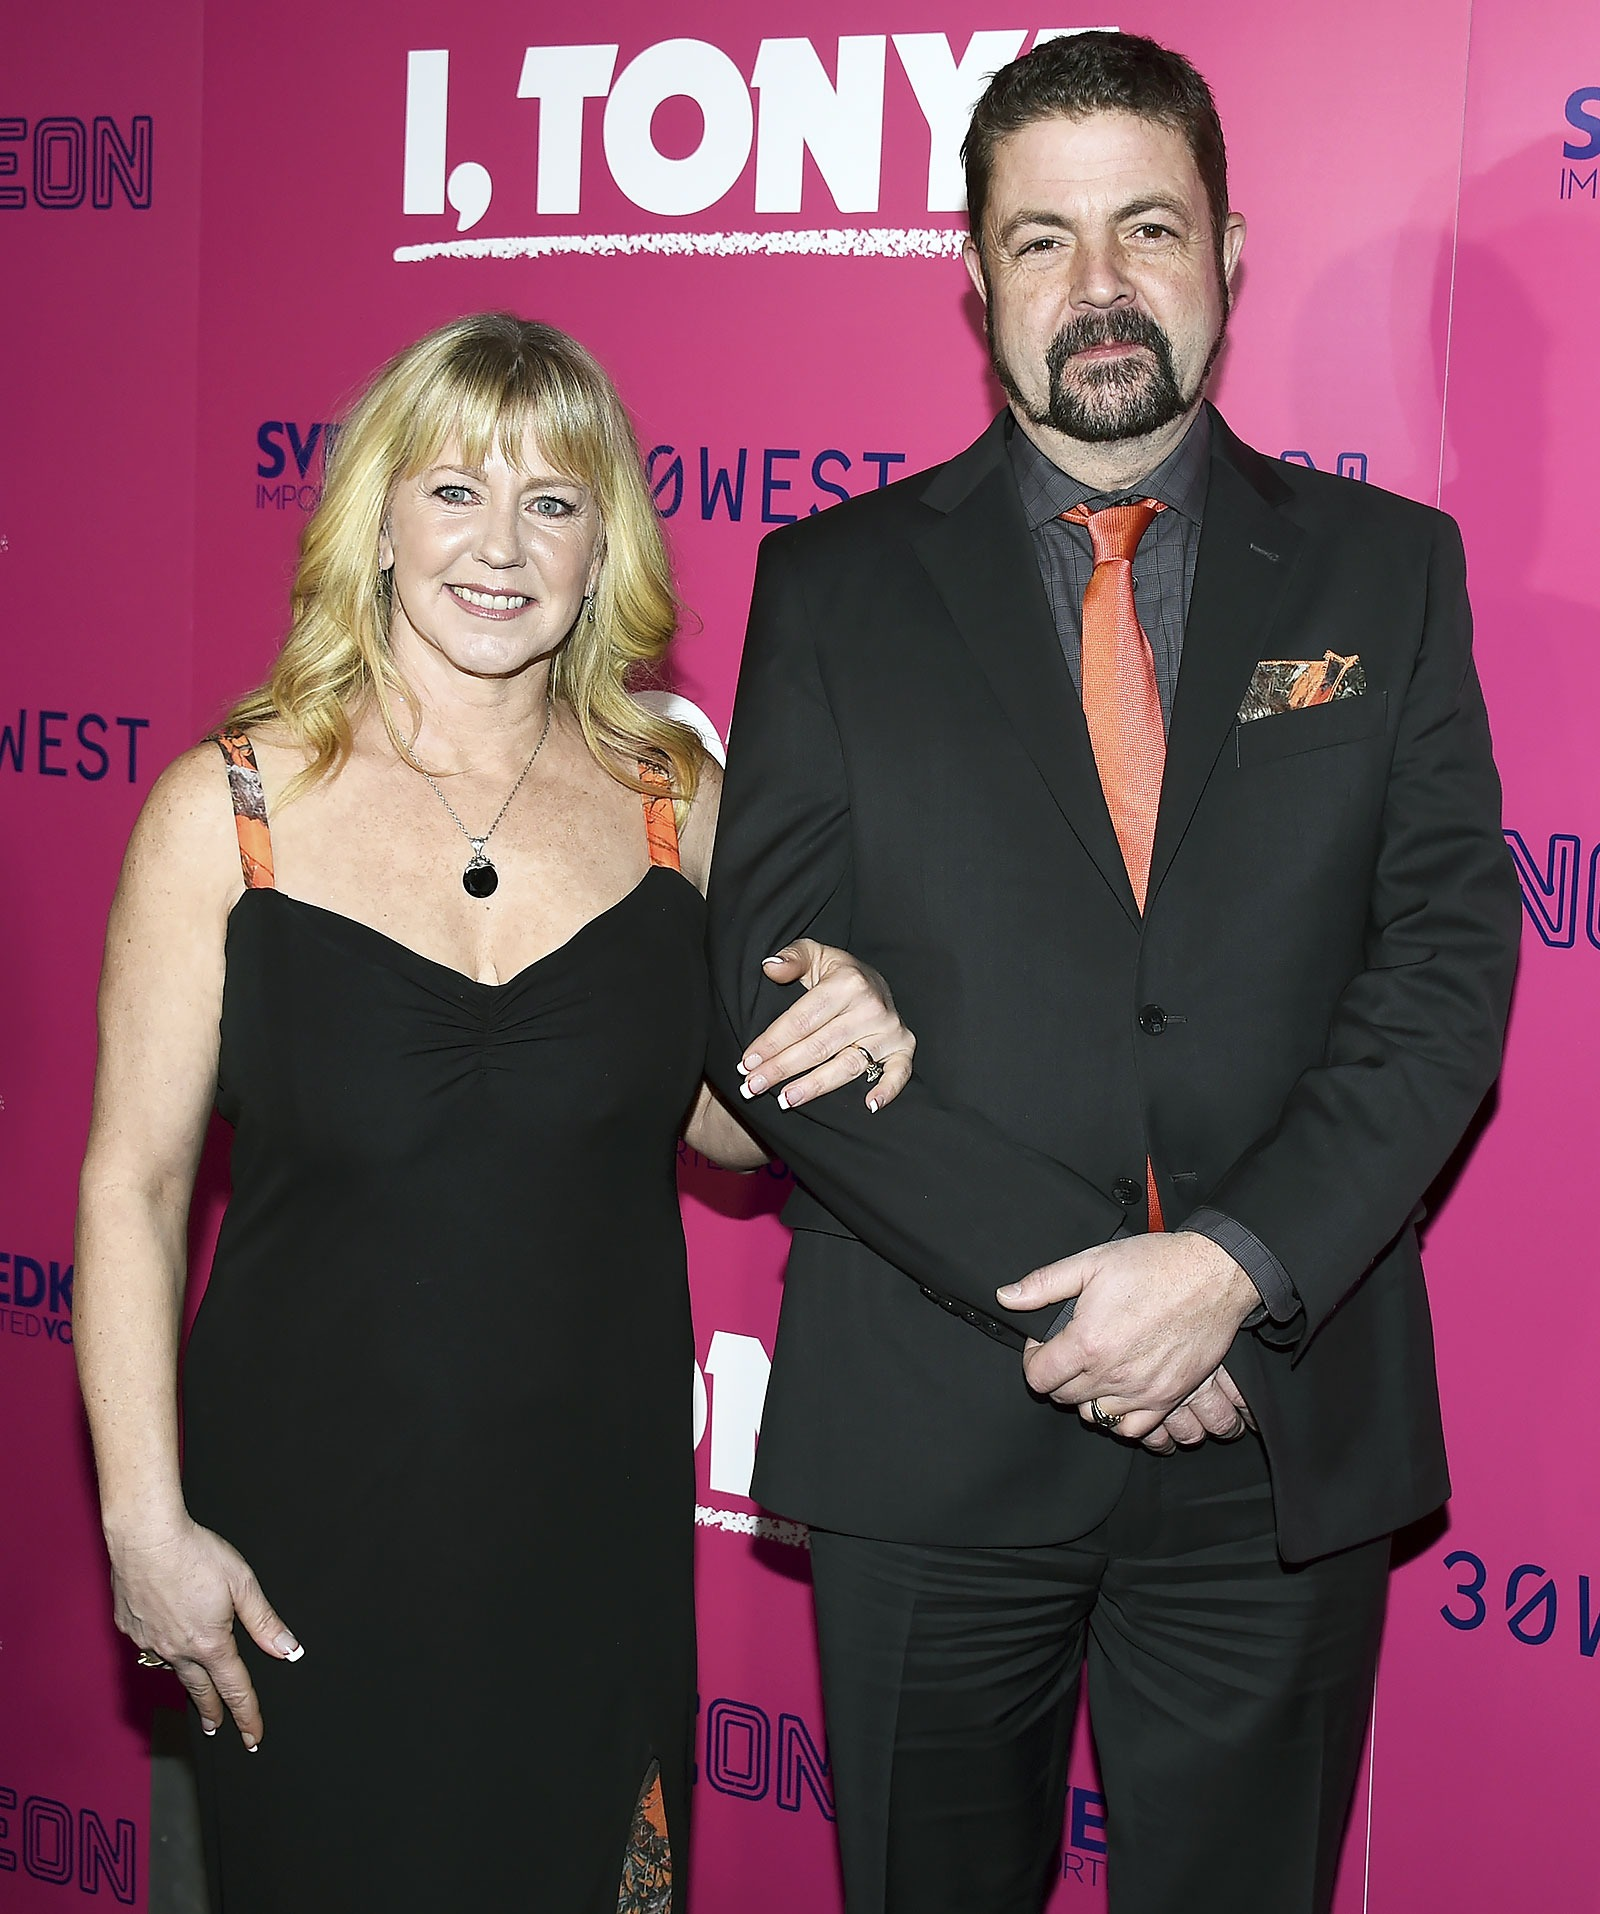 Joseph Jens Price and his wife, Tonya Harding makes a beautiful couple. They are wearing a matching attire. Joseph is wearing a black suit and orange tie while Tonya has put on a black dress with orange stripes.